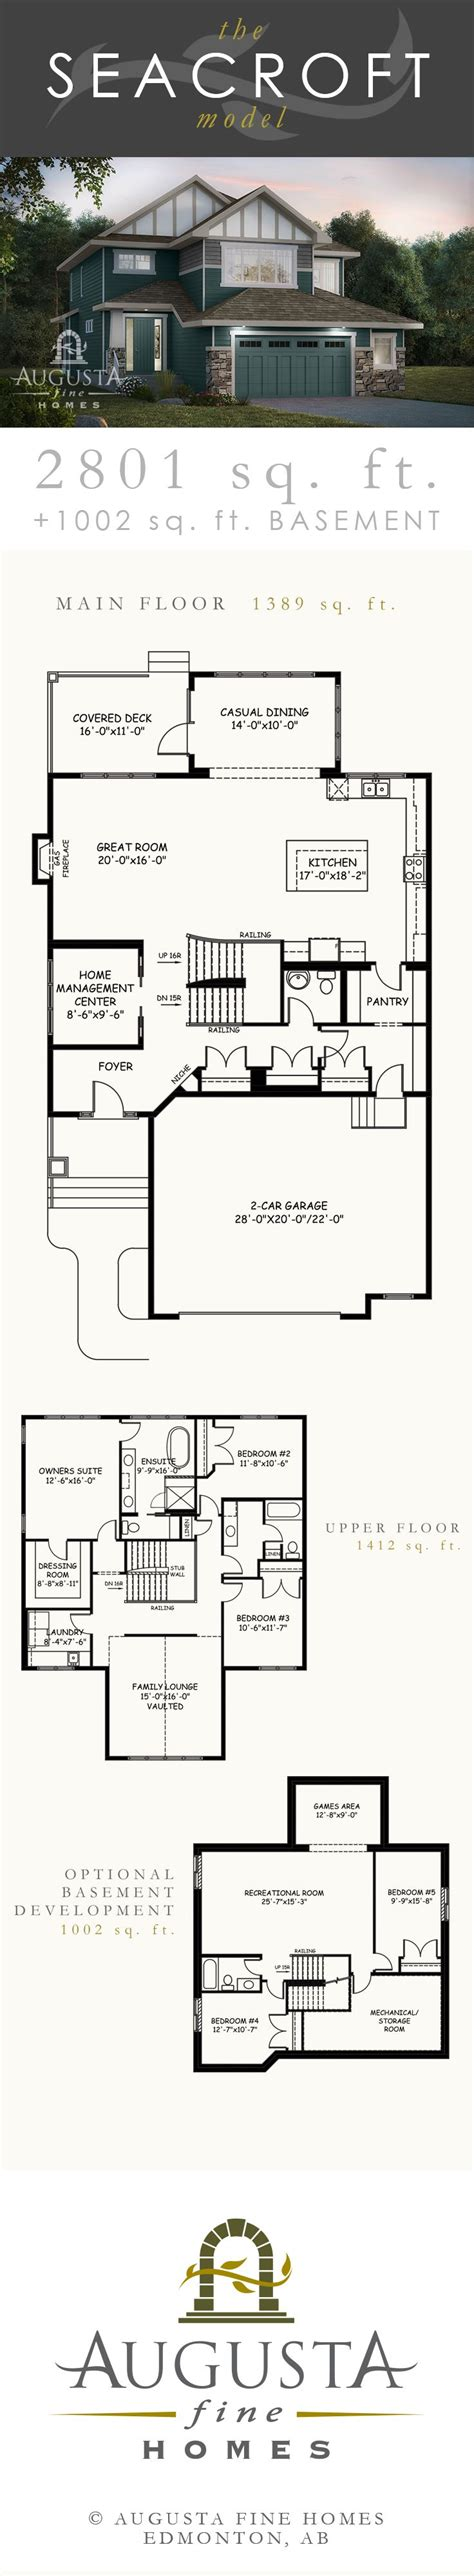 House Plans Edmonton by The Seacroft New Home Model By Augusta Homes In